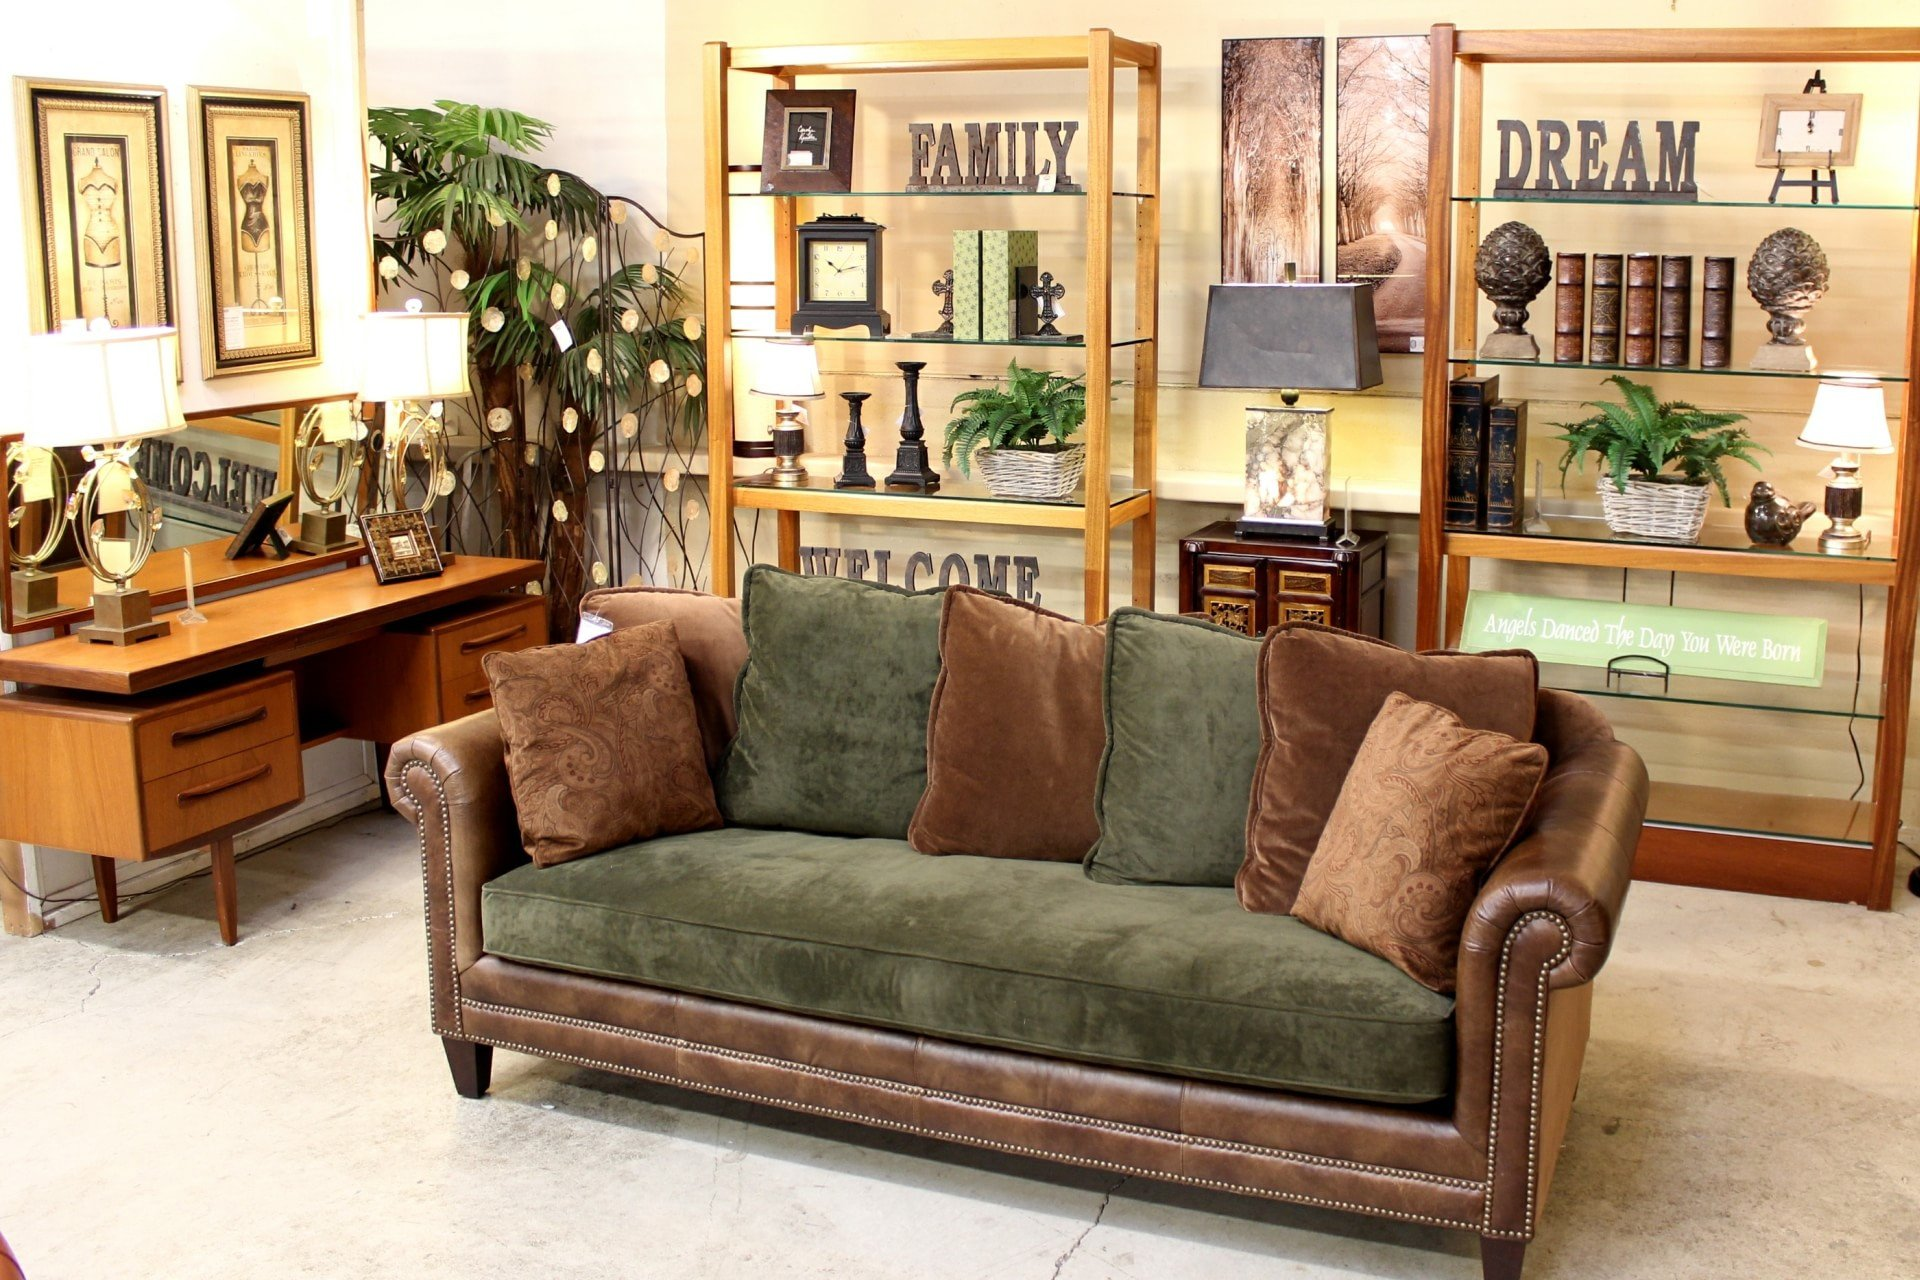 Upscale Consignment Furniture and Decor Best Of Upscale Consignment Furniture & Decor Se 82nd Dr Gladstone or Yp